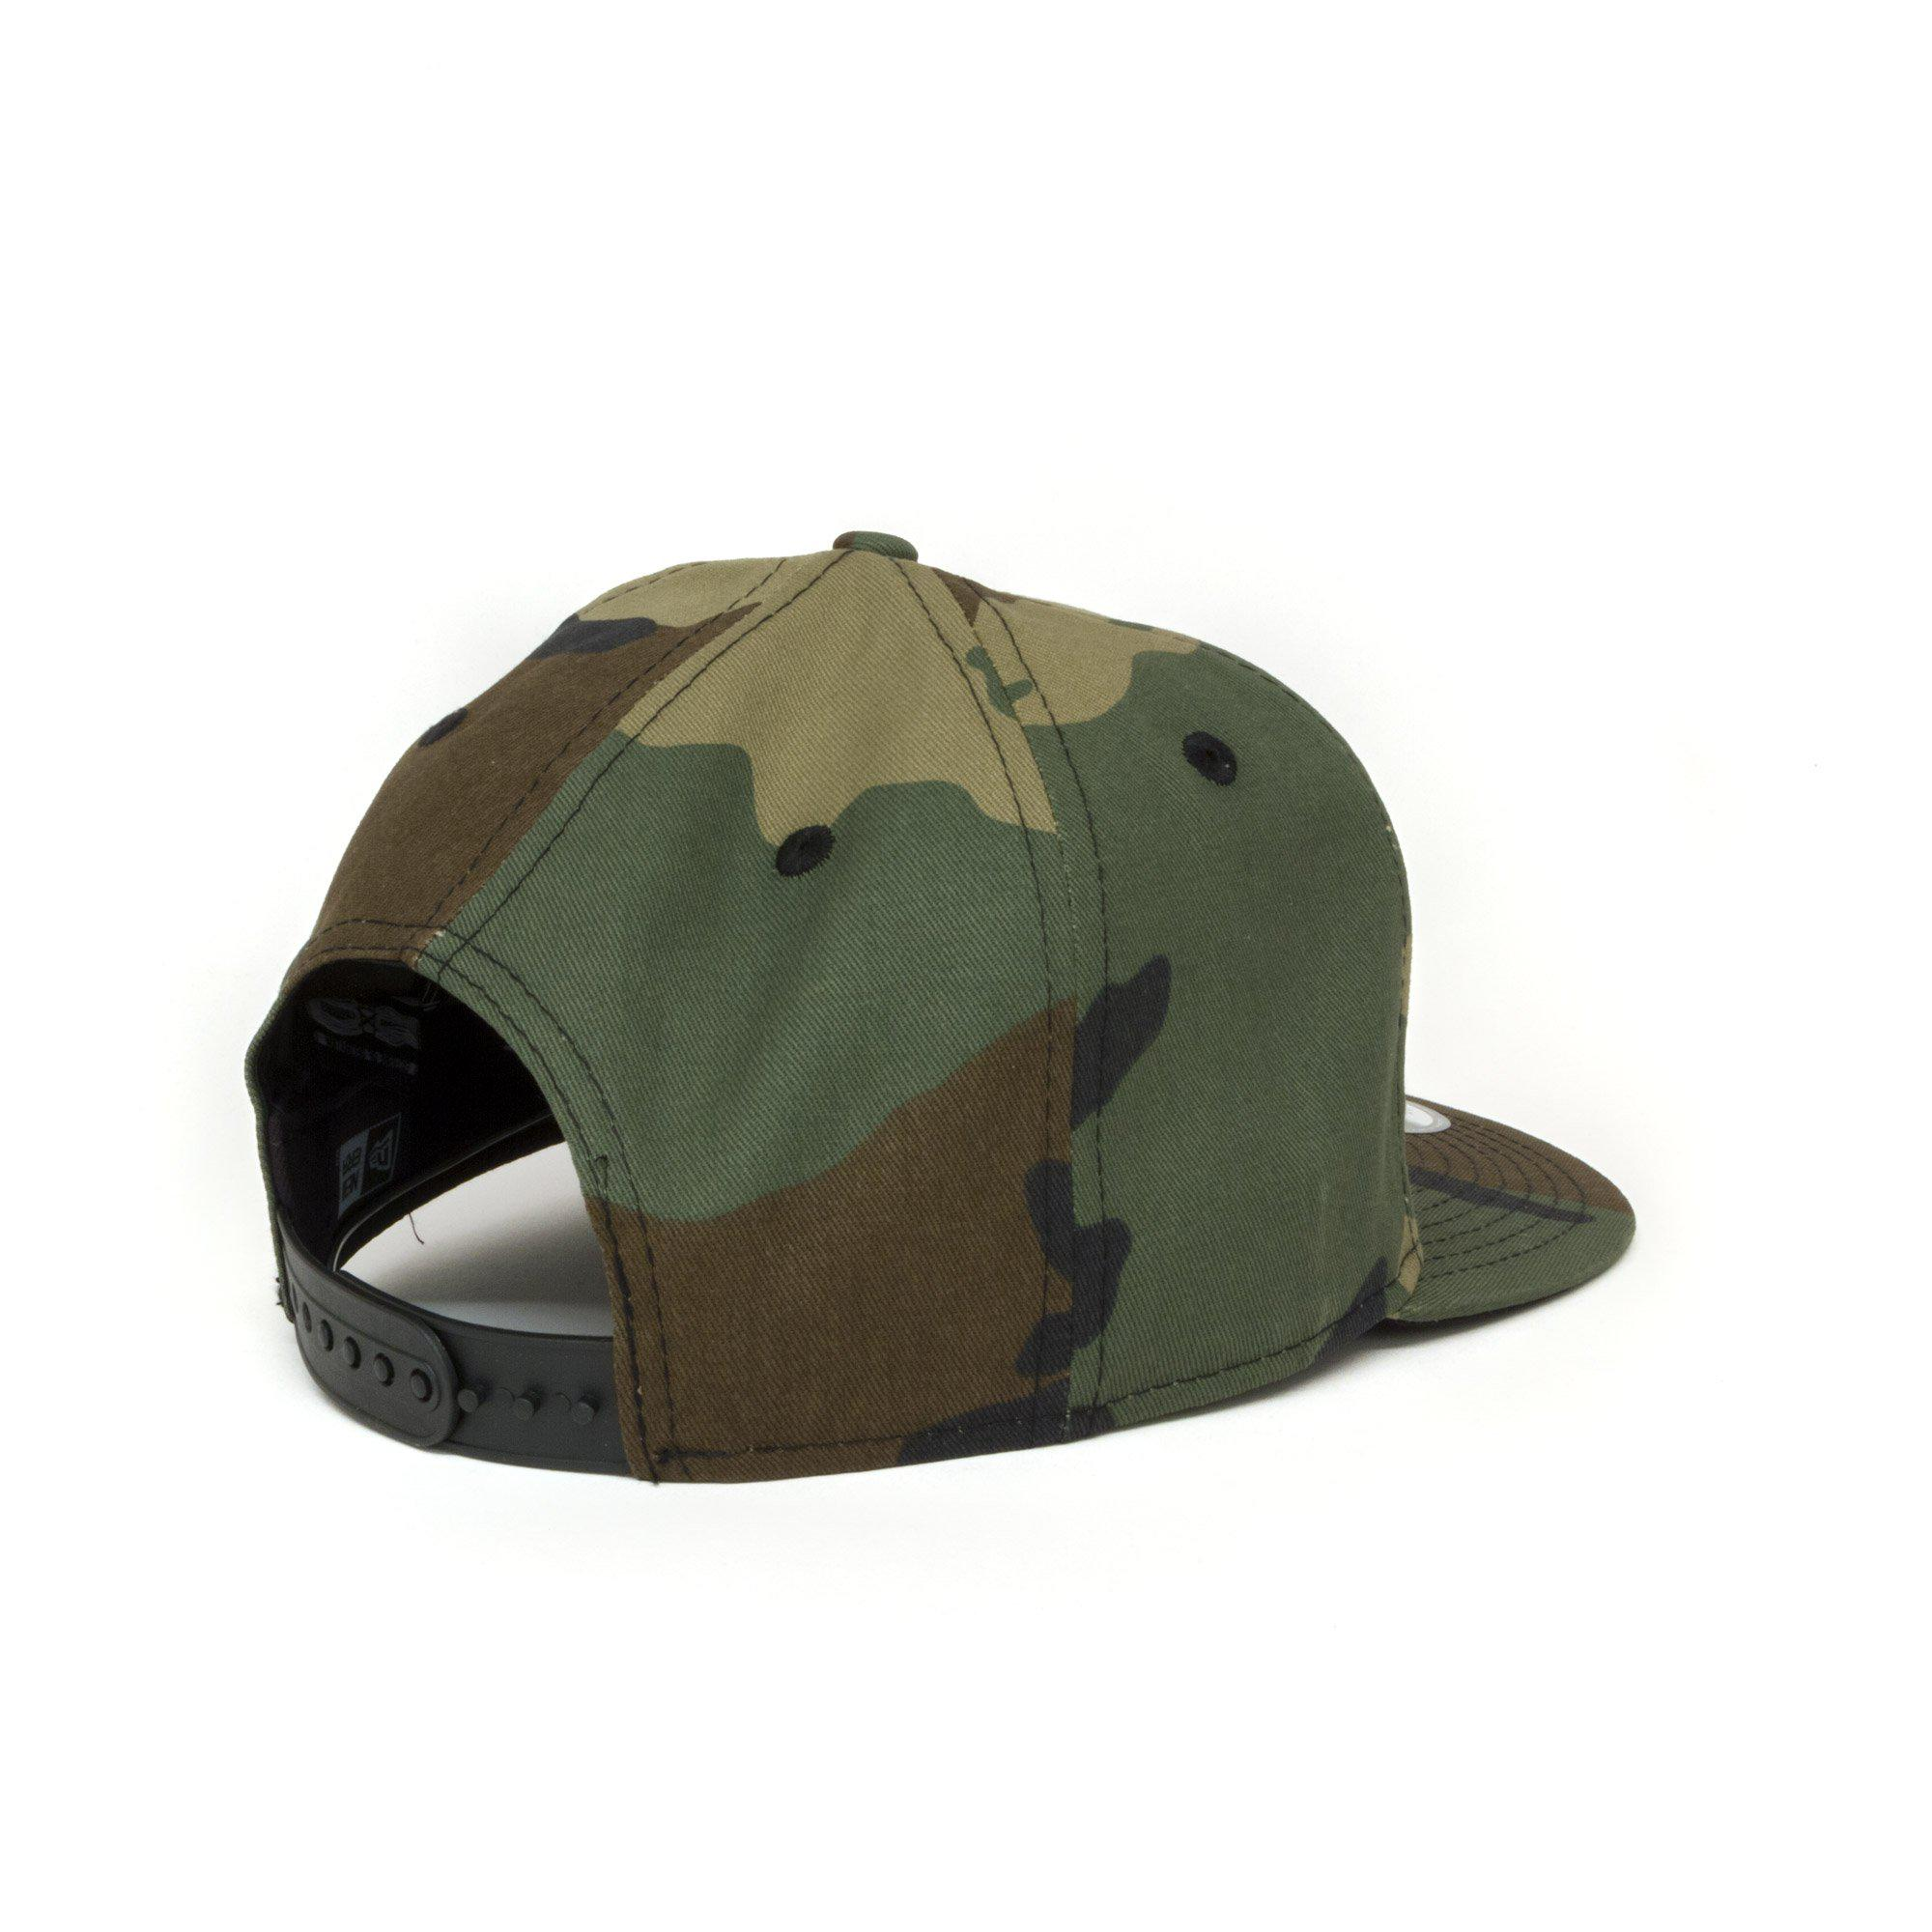 074b60b2046 KTZ - Green New England Patriots 9fifty Camo Cap for Men - Lyst. View  fullscreen